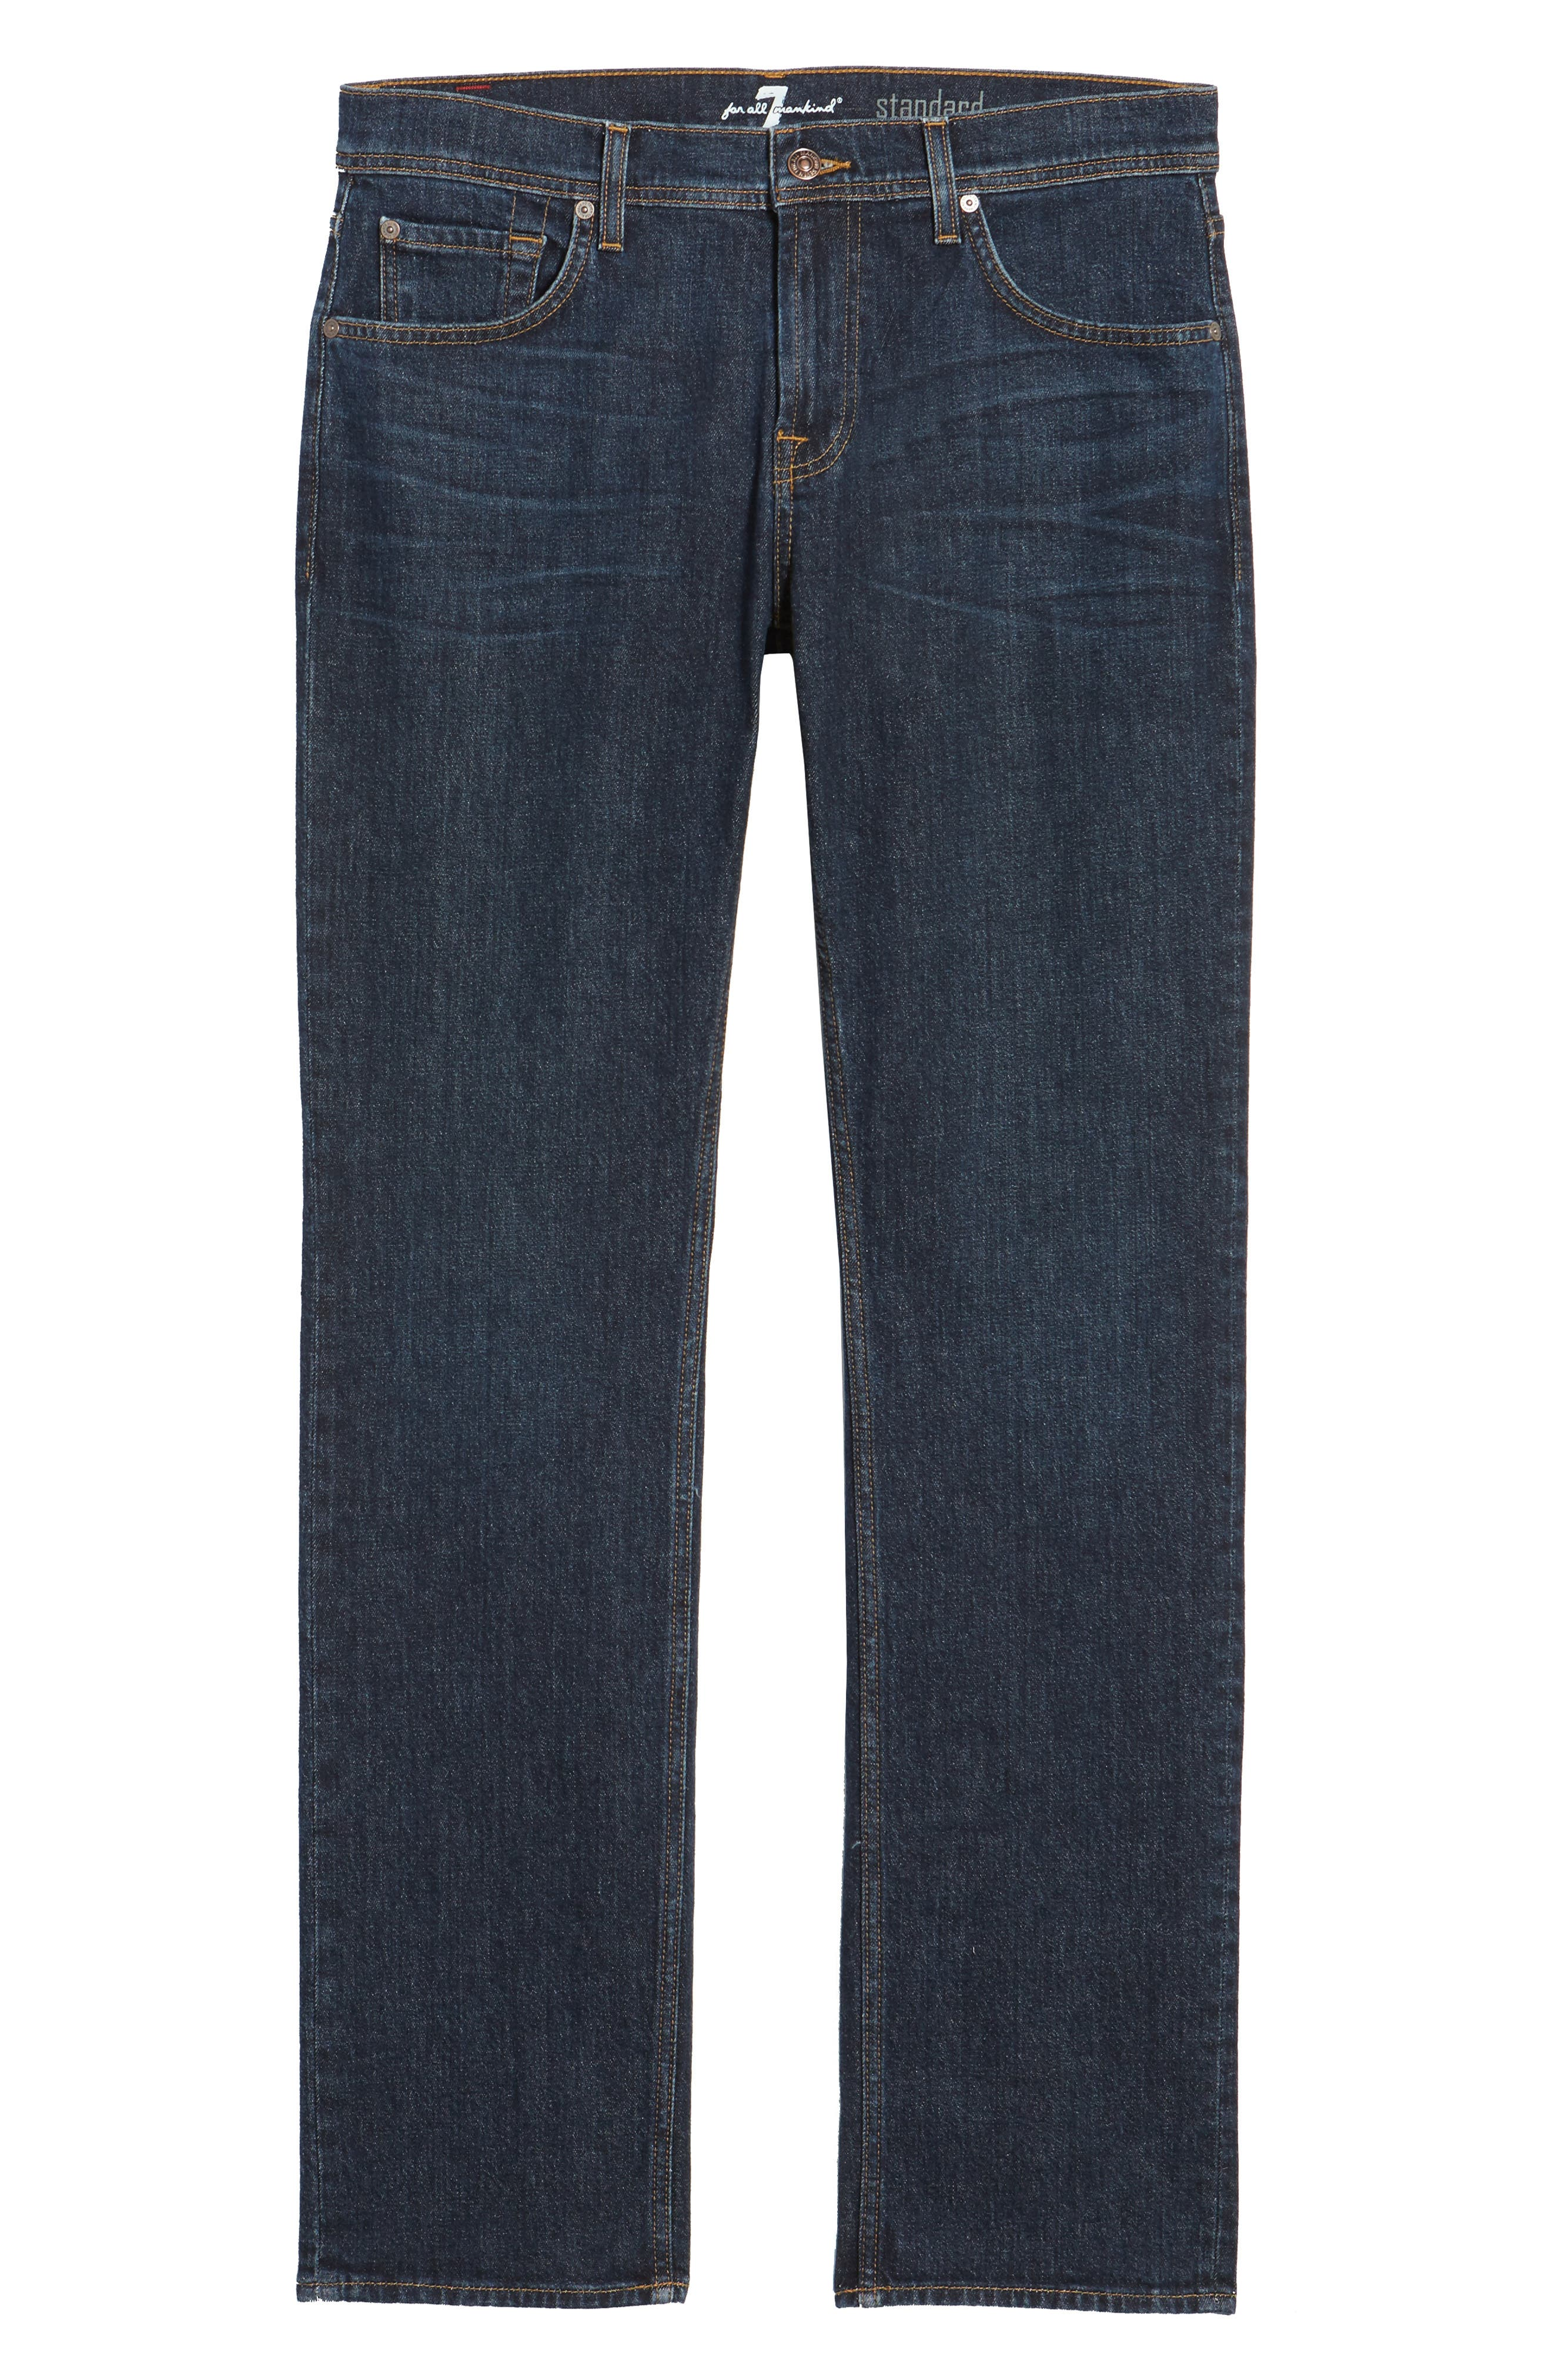 Standard Straight Leg Jeans,                             Alternate thumbnail 6, color,                             Forfeit